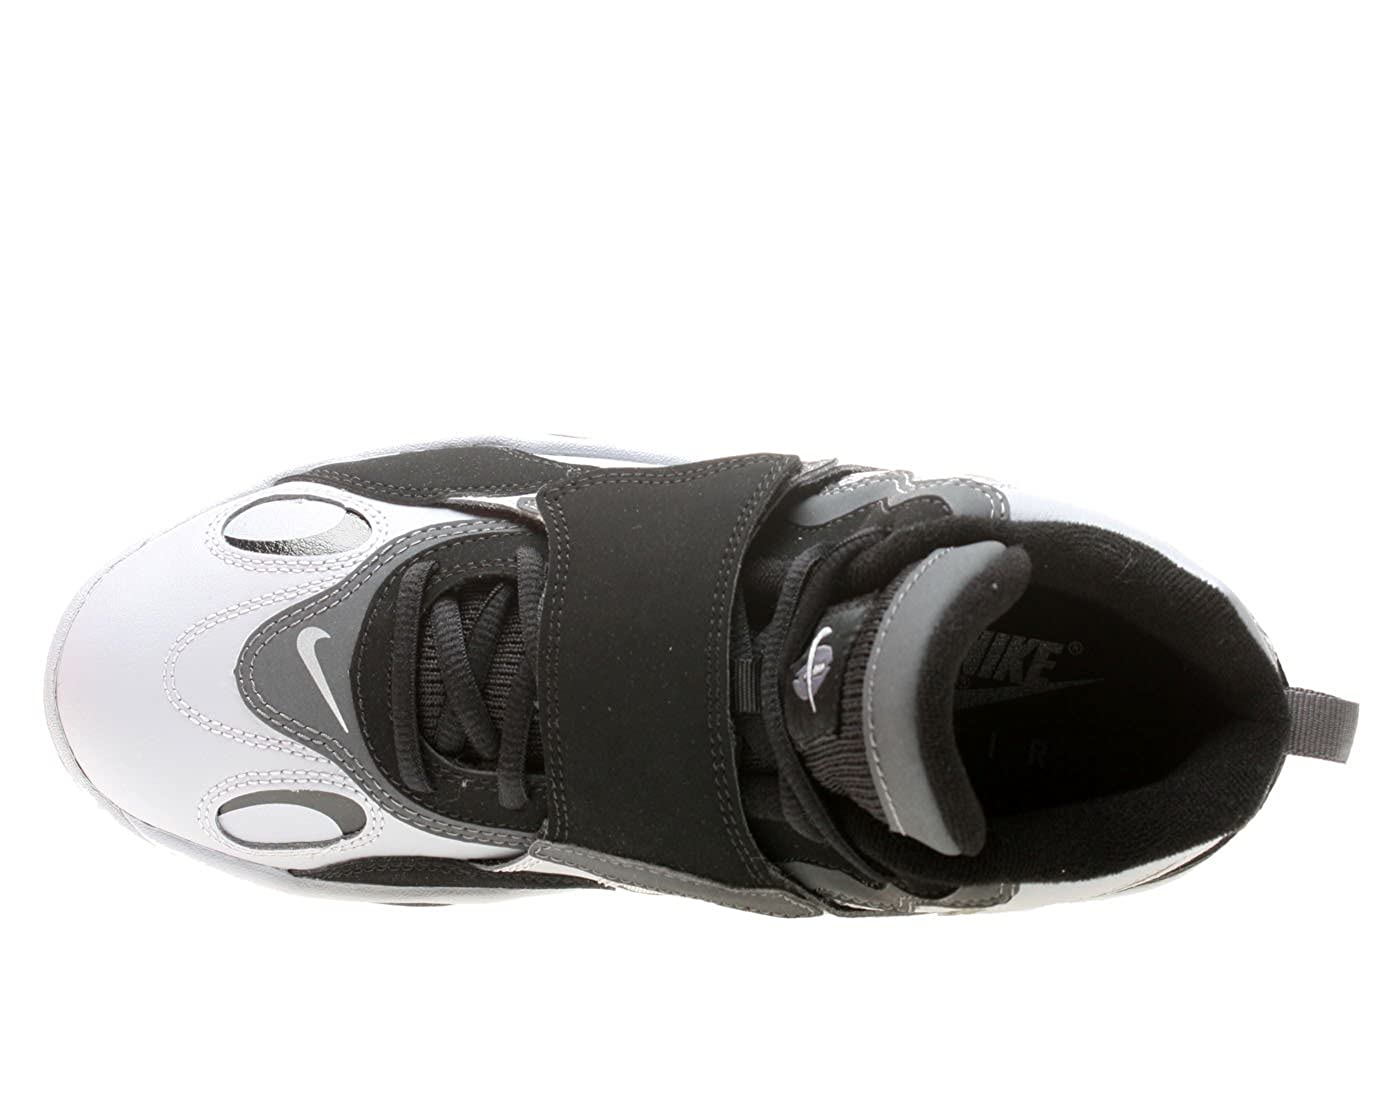 acb985a04f9 NIKE Women s W Free Rn  18 Wild Velvet Low-Top Sneakers  Amazon.co.uk  Shoes    Bags